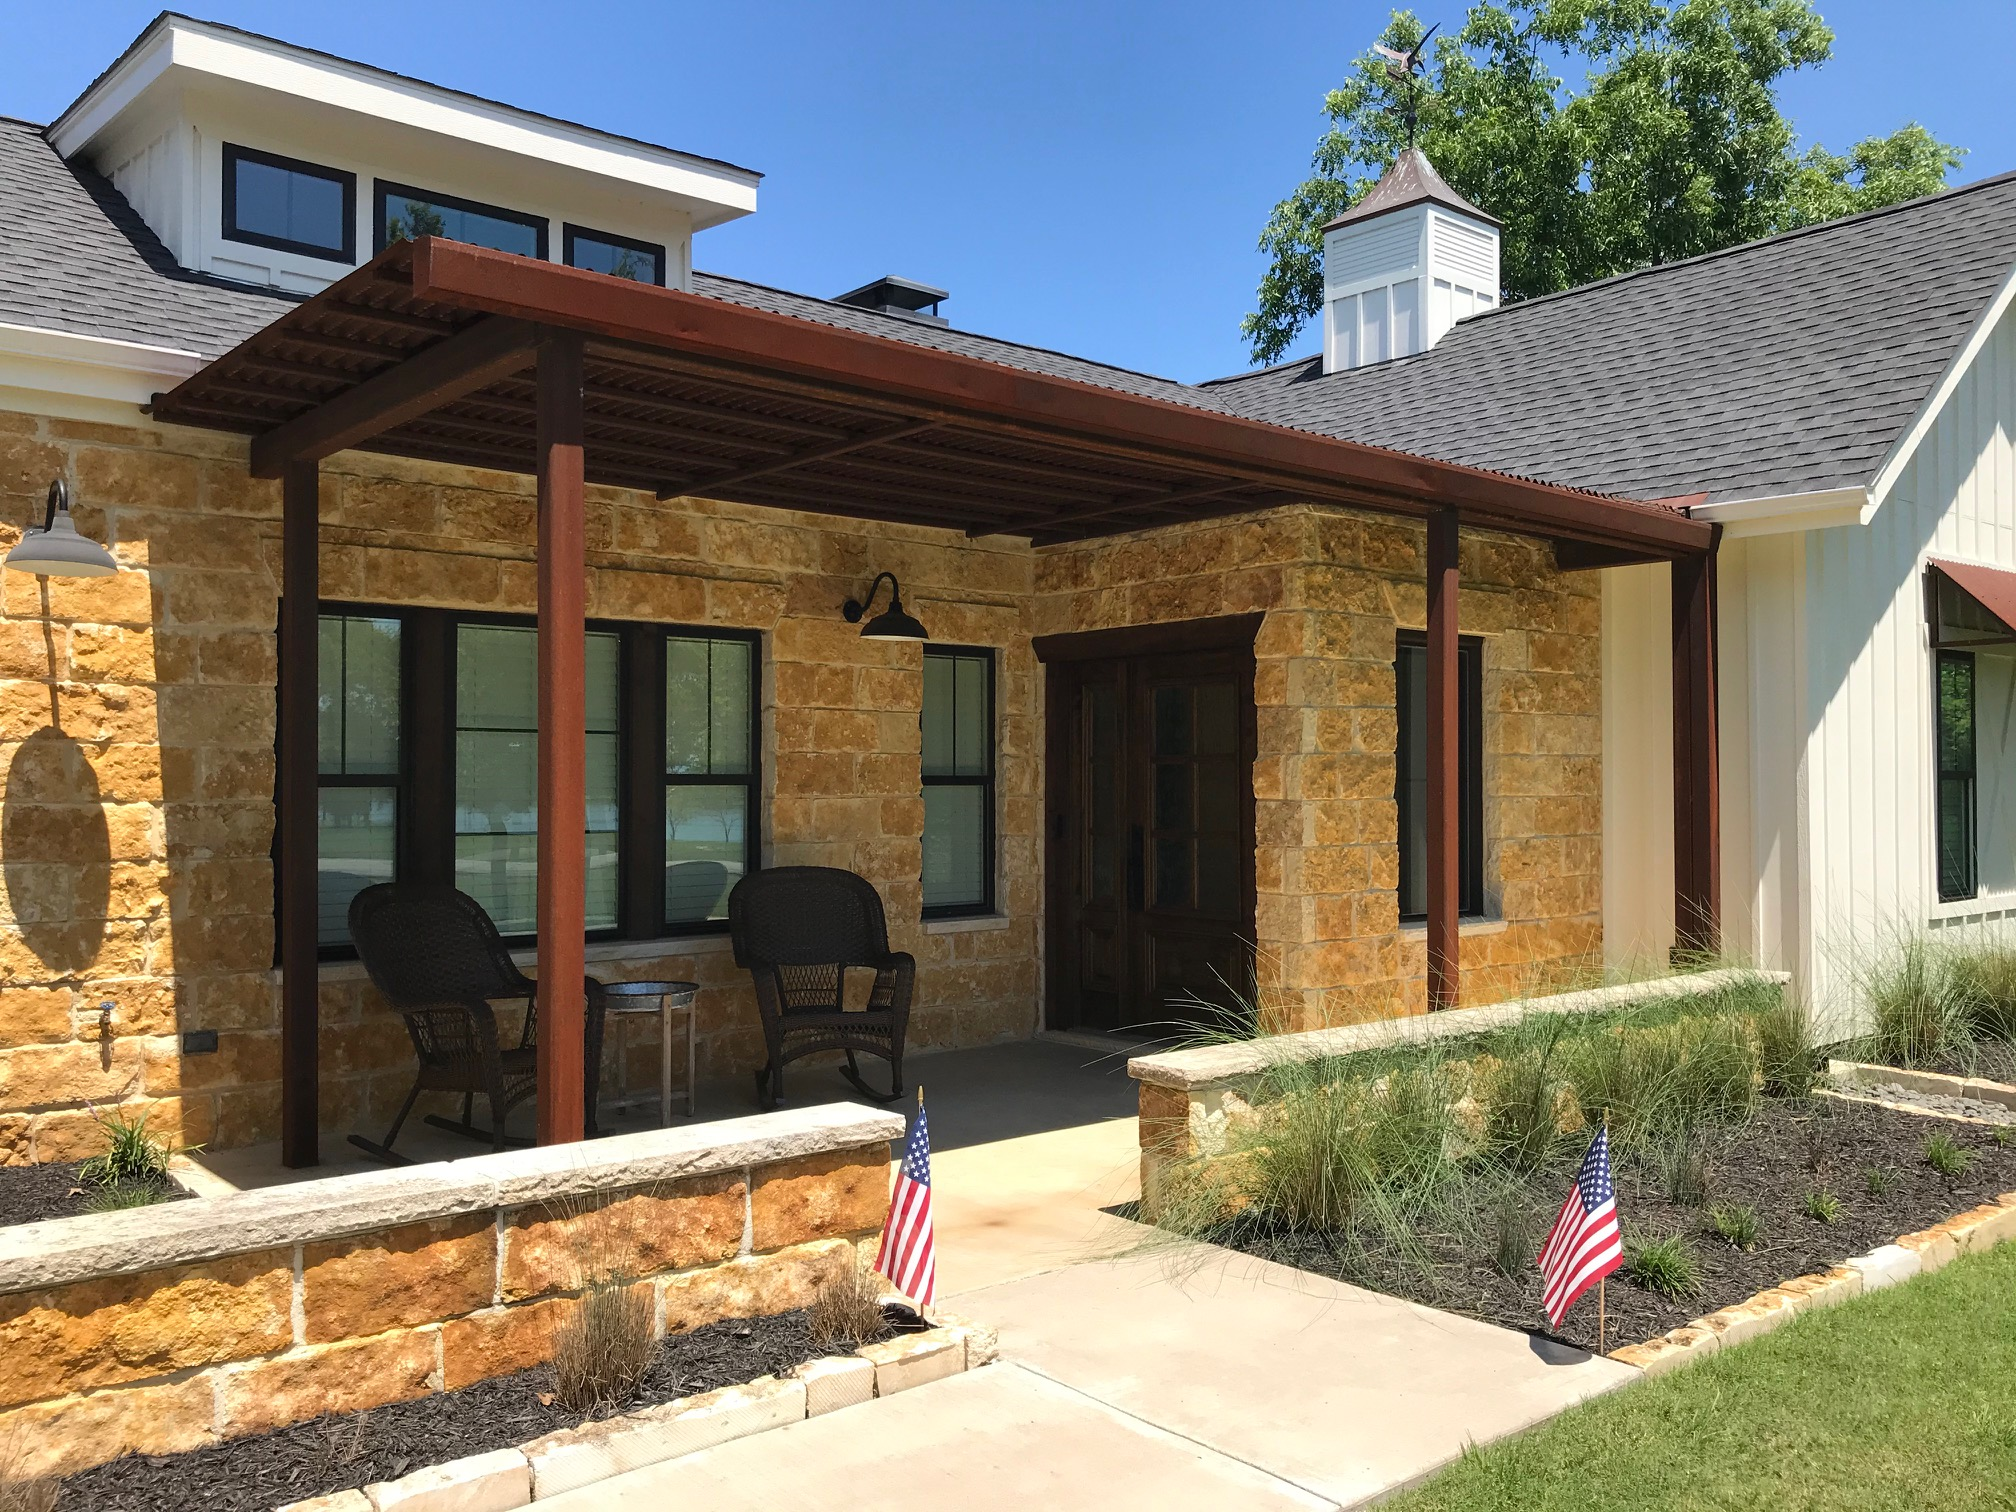 Weathering Steel in Residential Projects